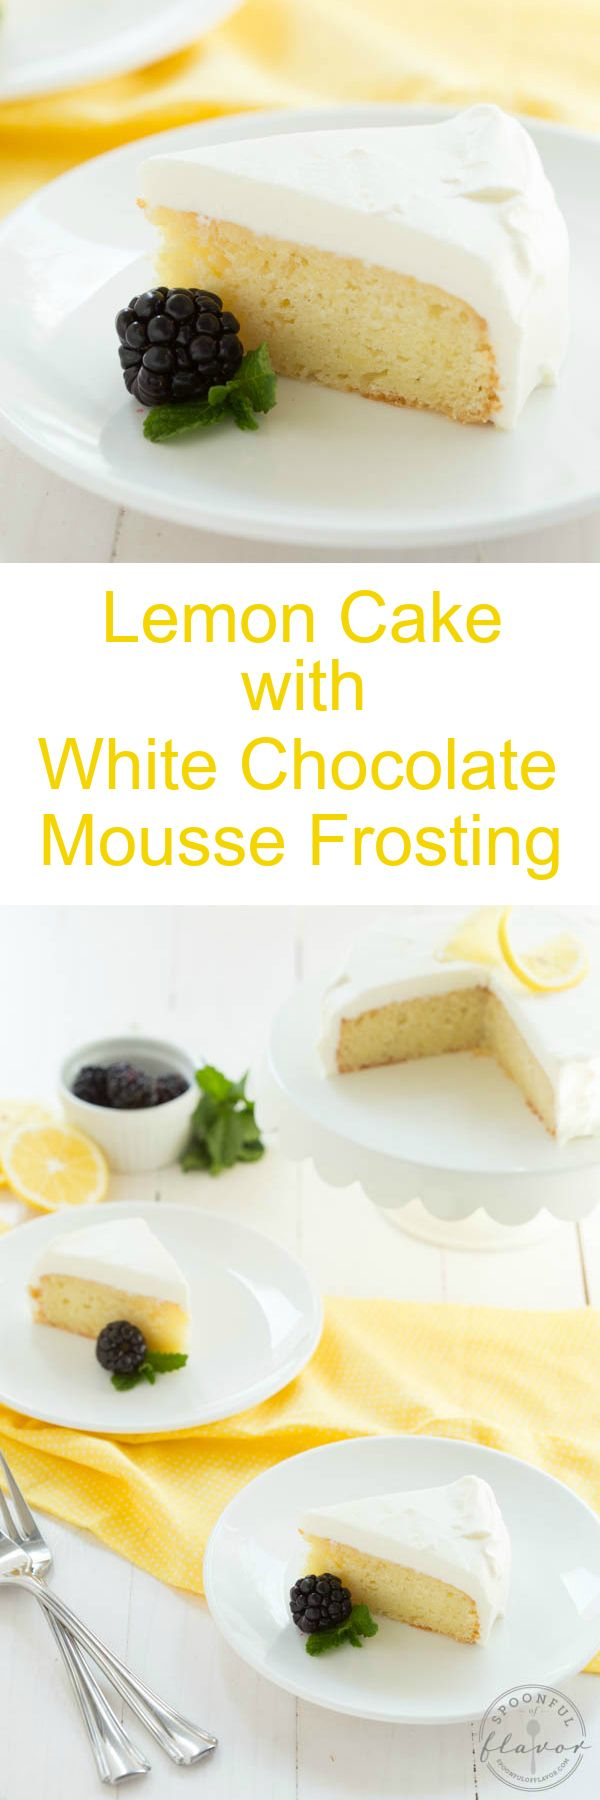 Lemon Cake with White Chocolate Mousse Frosting - a beautiful small cake perfect for two people!